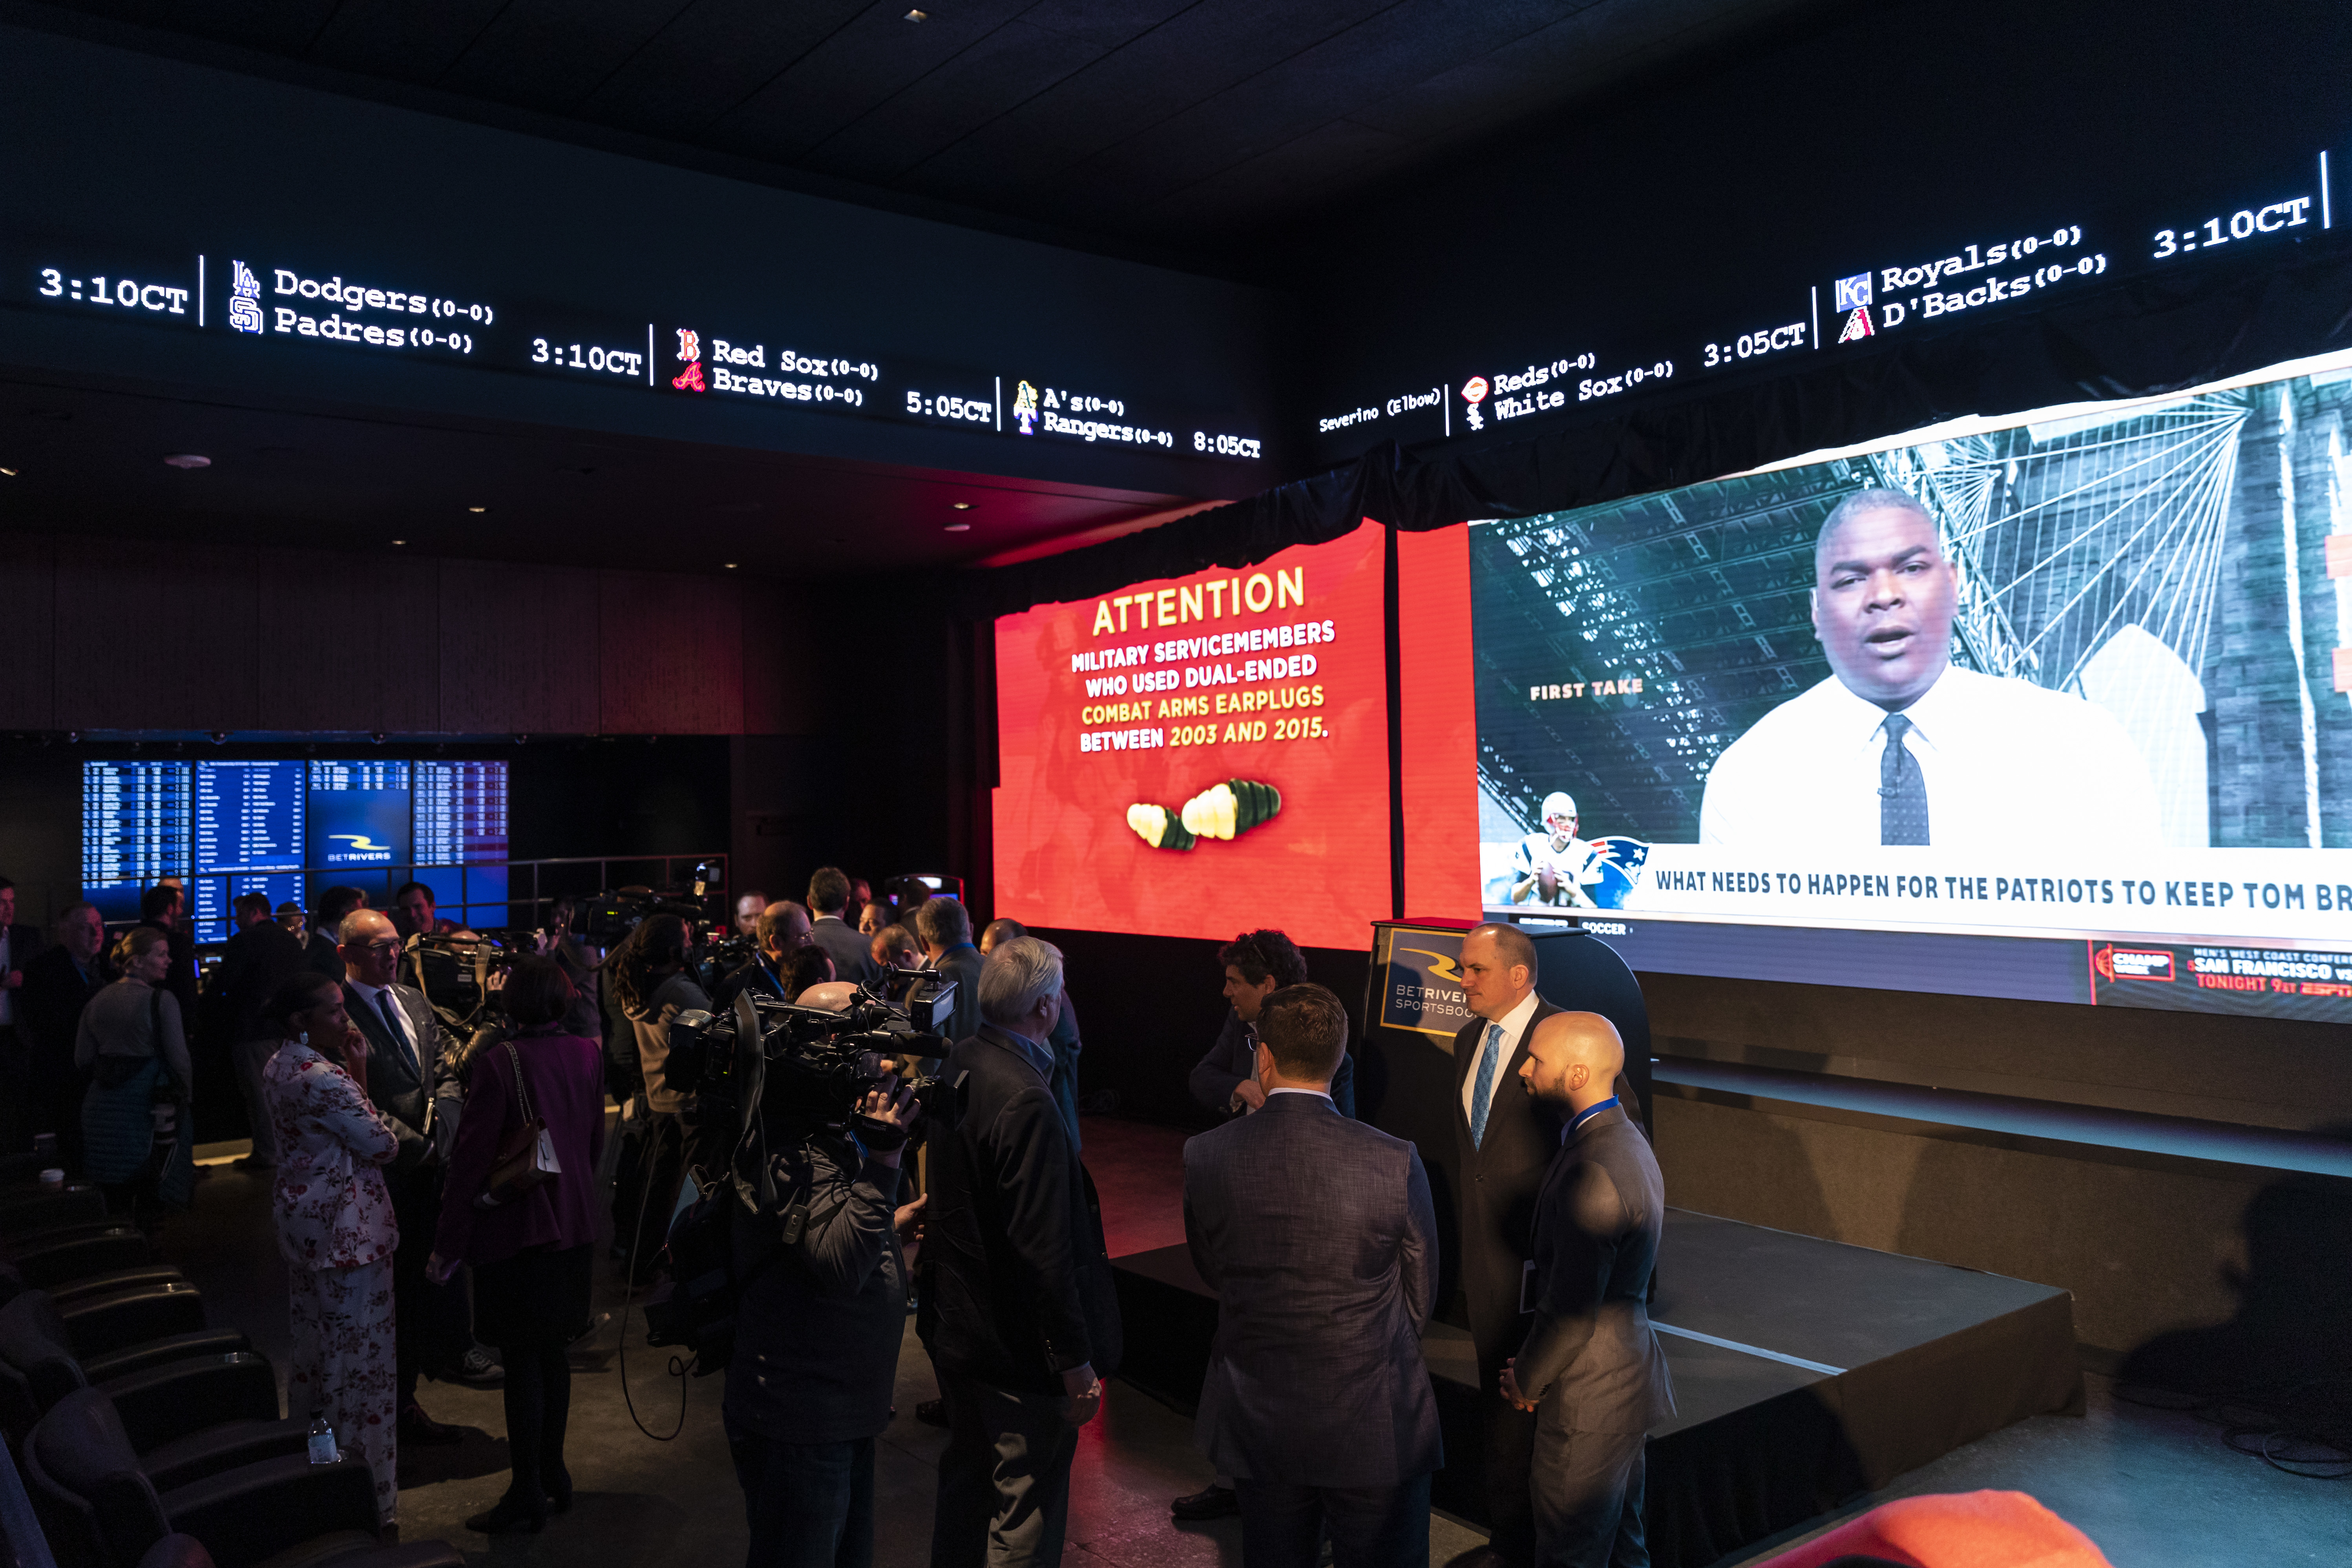 The BetRivers Sportsbook, the first brick-and-mortar sportsbook approved by the Illinois Gaming Board, pictured at its March 2020 opening in Des Plaines. Illinoisans have bet $1.4 billion since then.